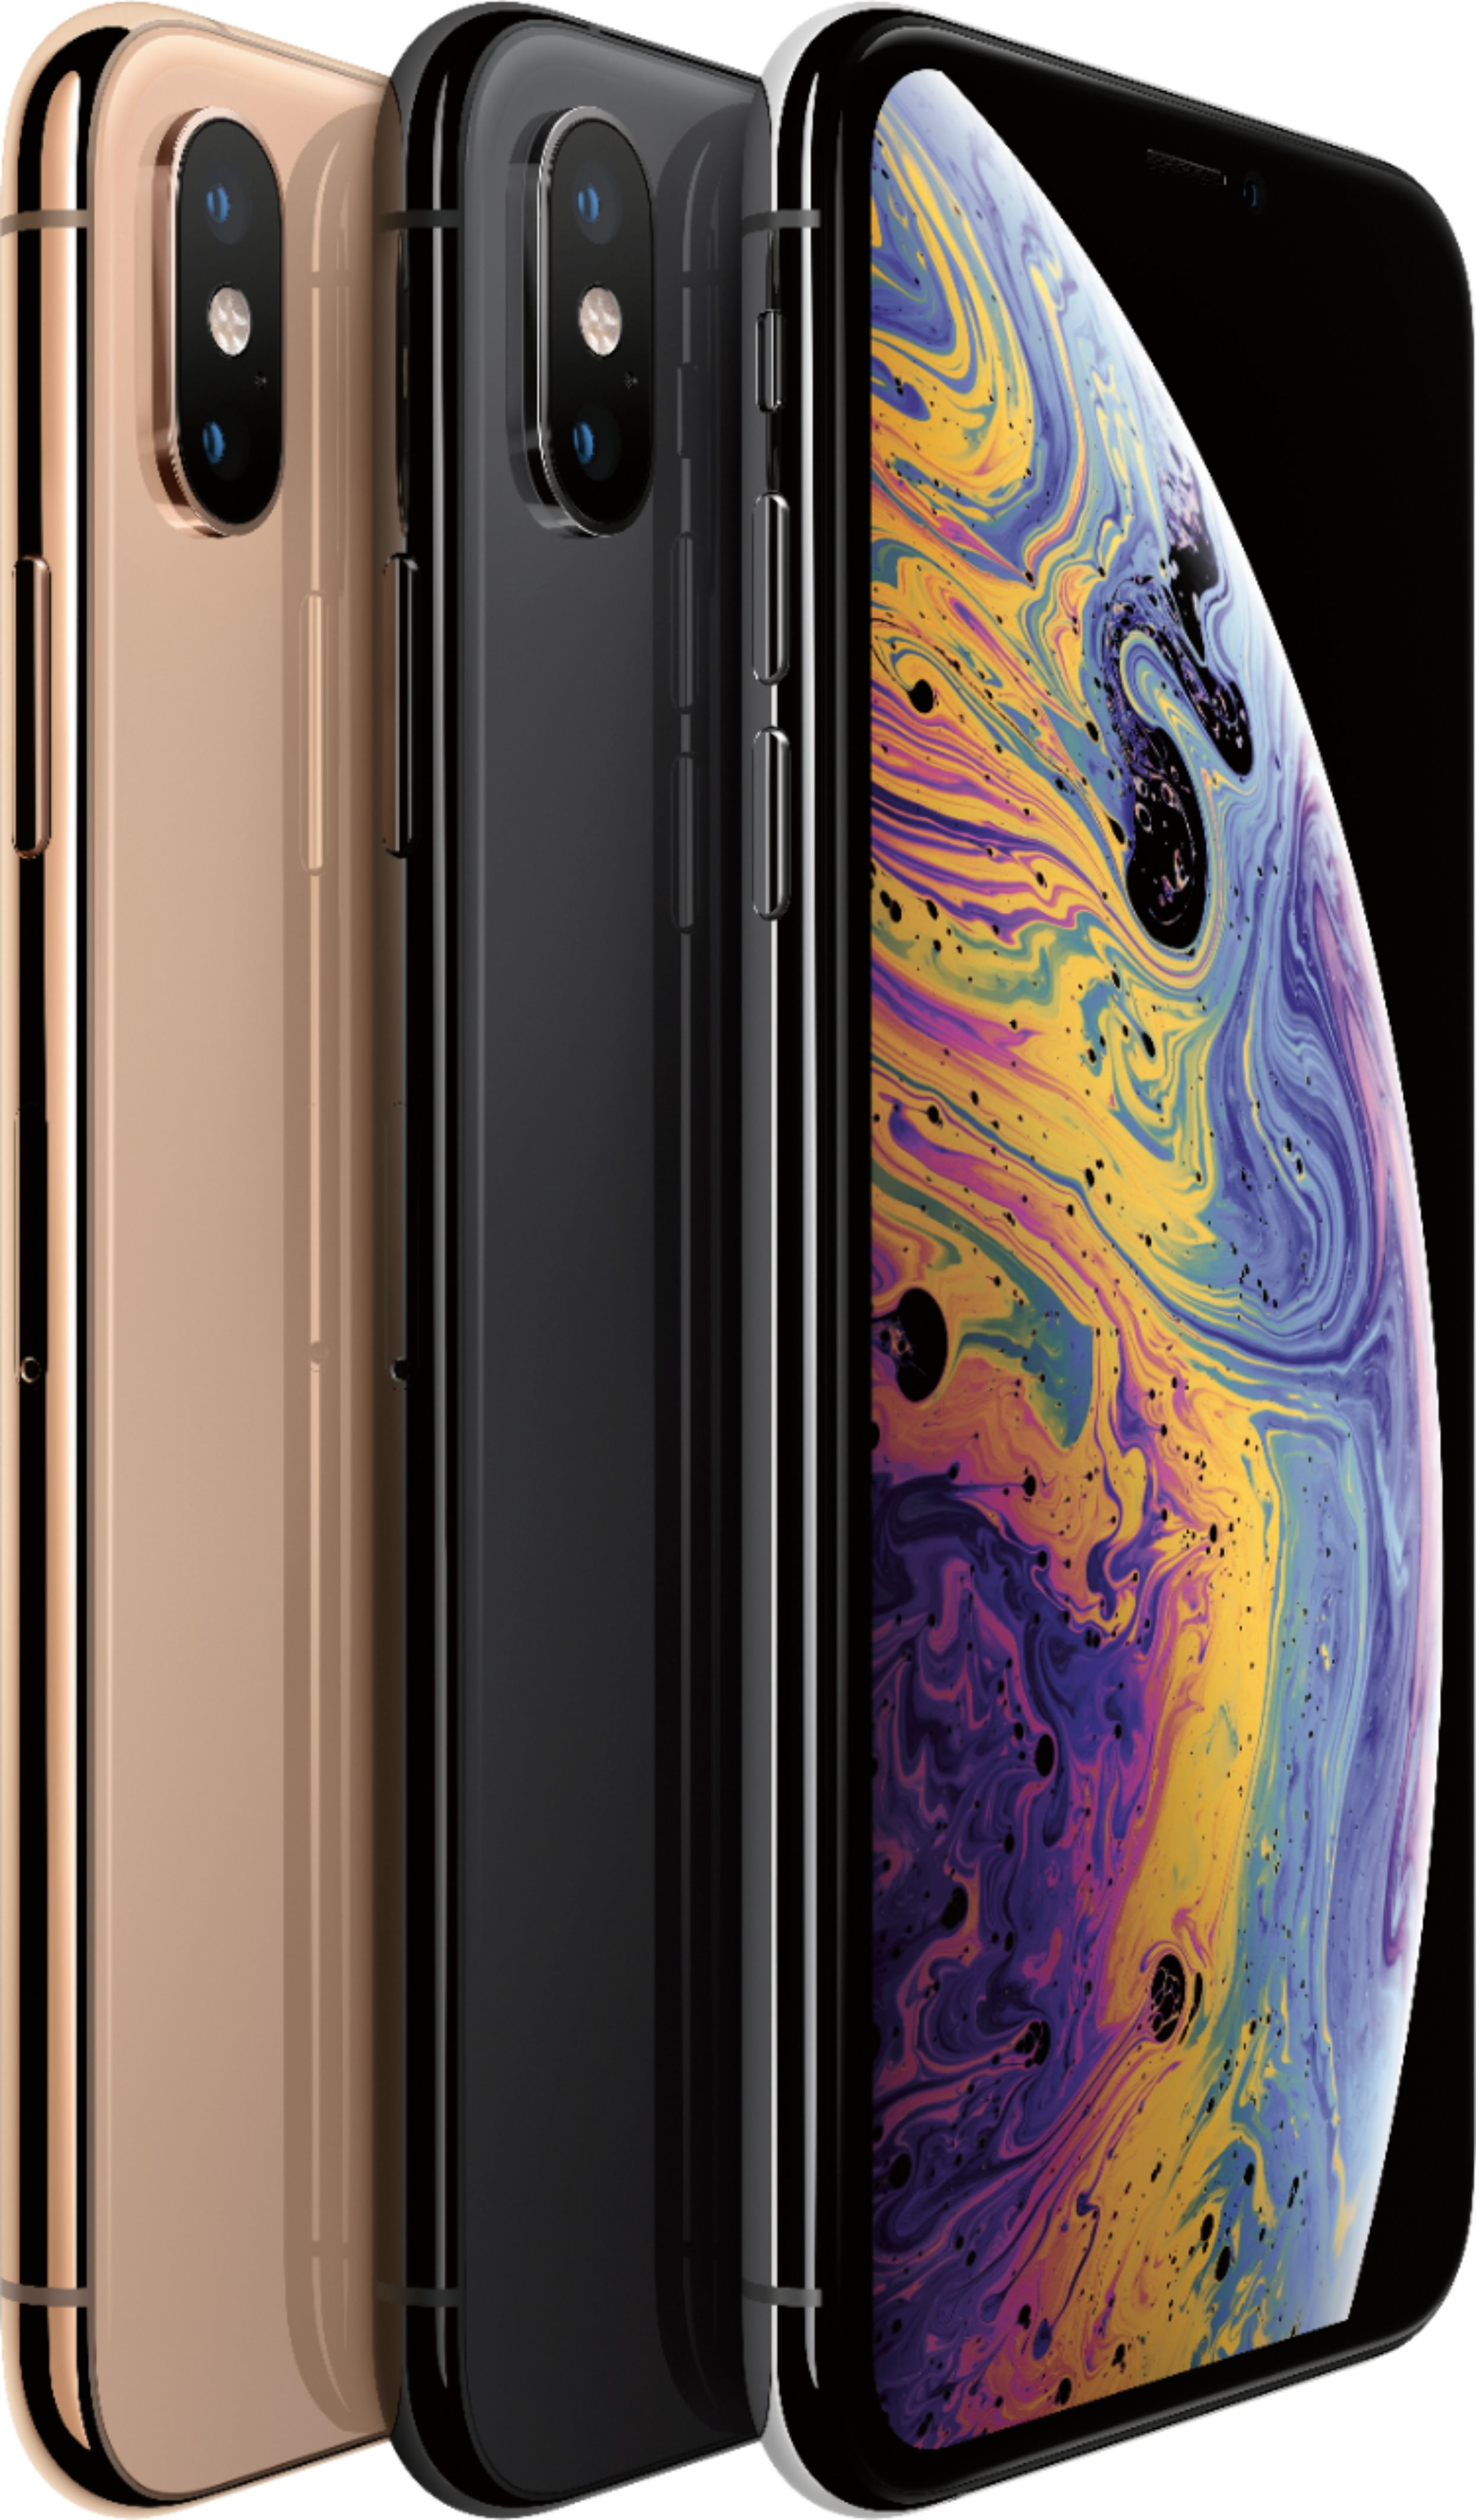 Apple iPhone XS 512GB Silver A Grade Refurbished Fully Unlocked Smartphone